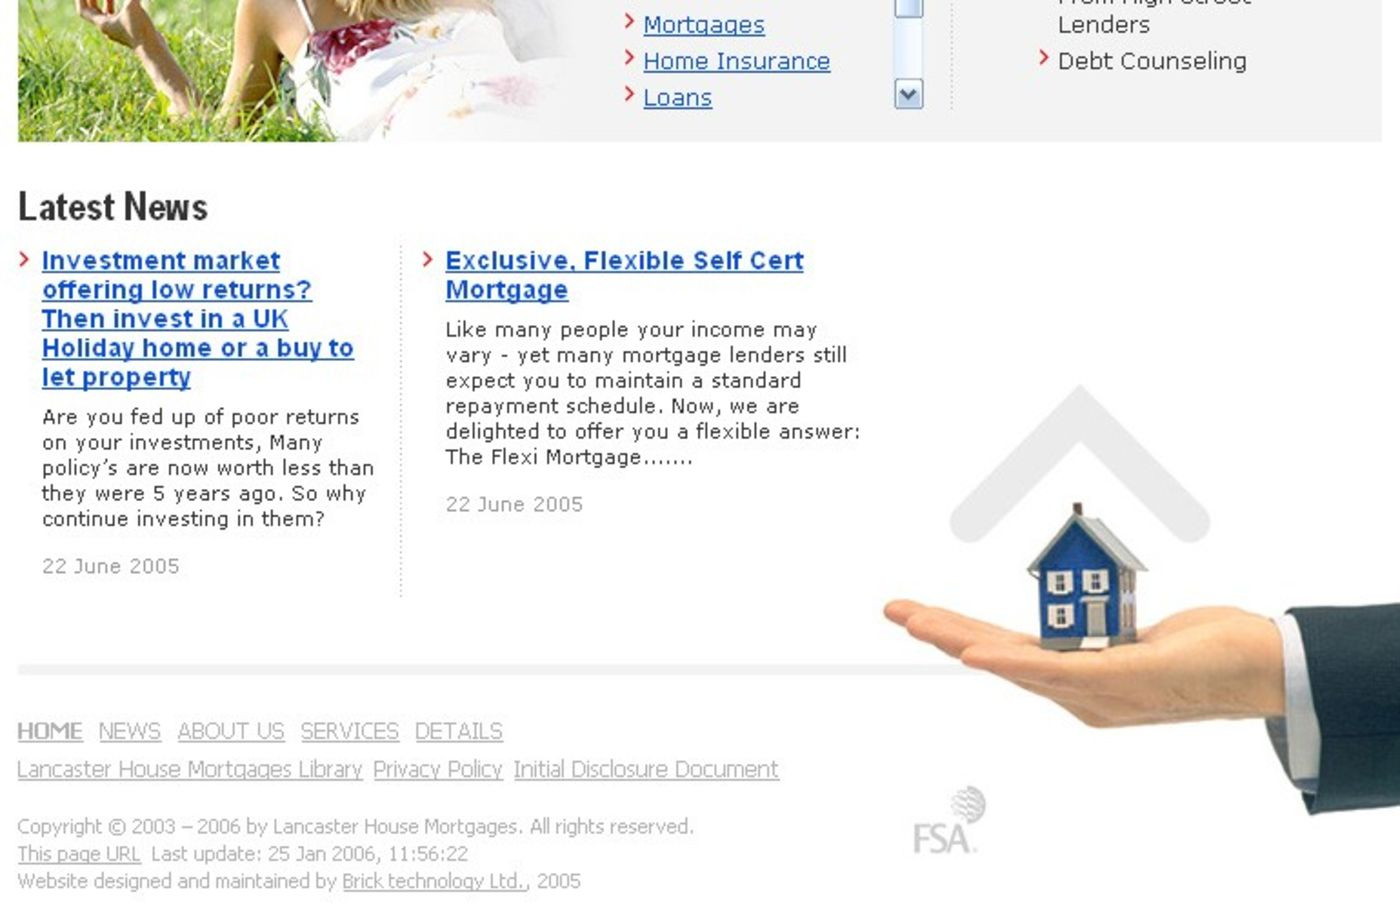 Lancaster House Mortgages Homepage footer